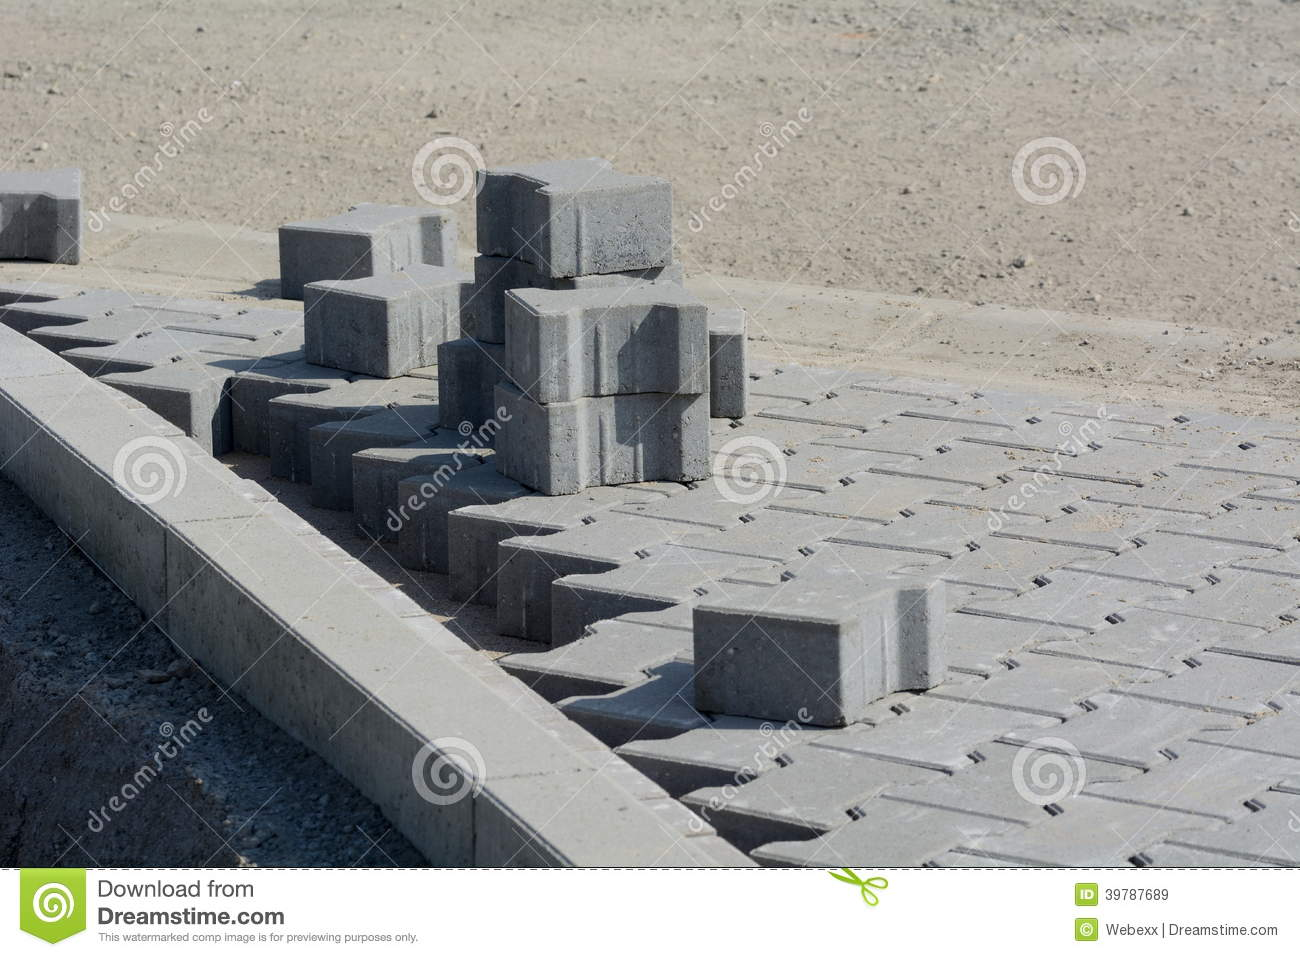 Download Paving stones stock image. Image of association, patio - 39787689